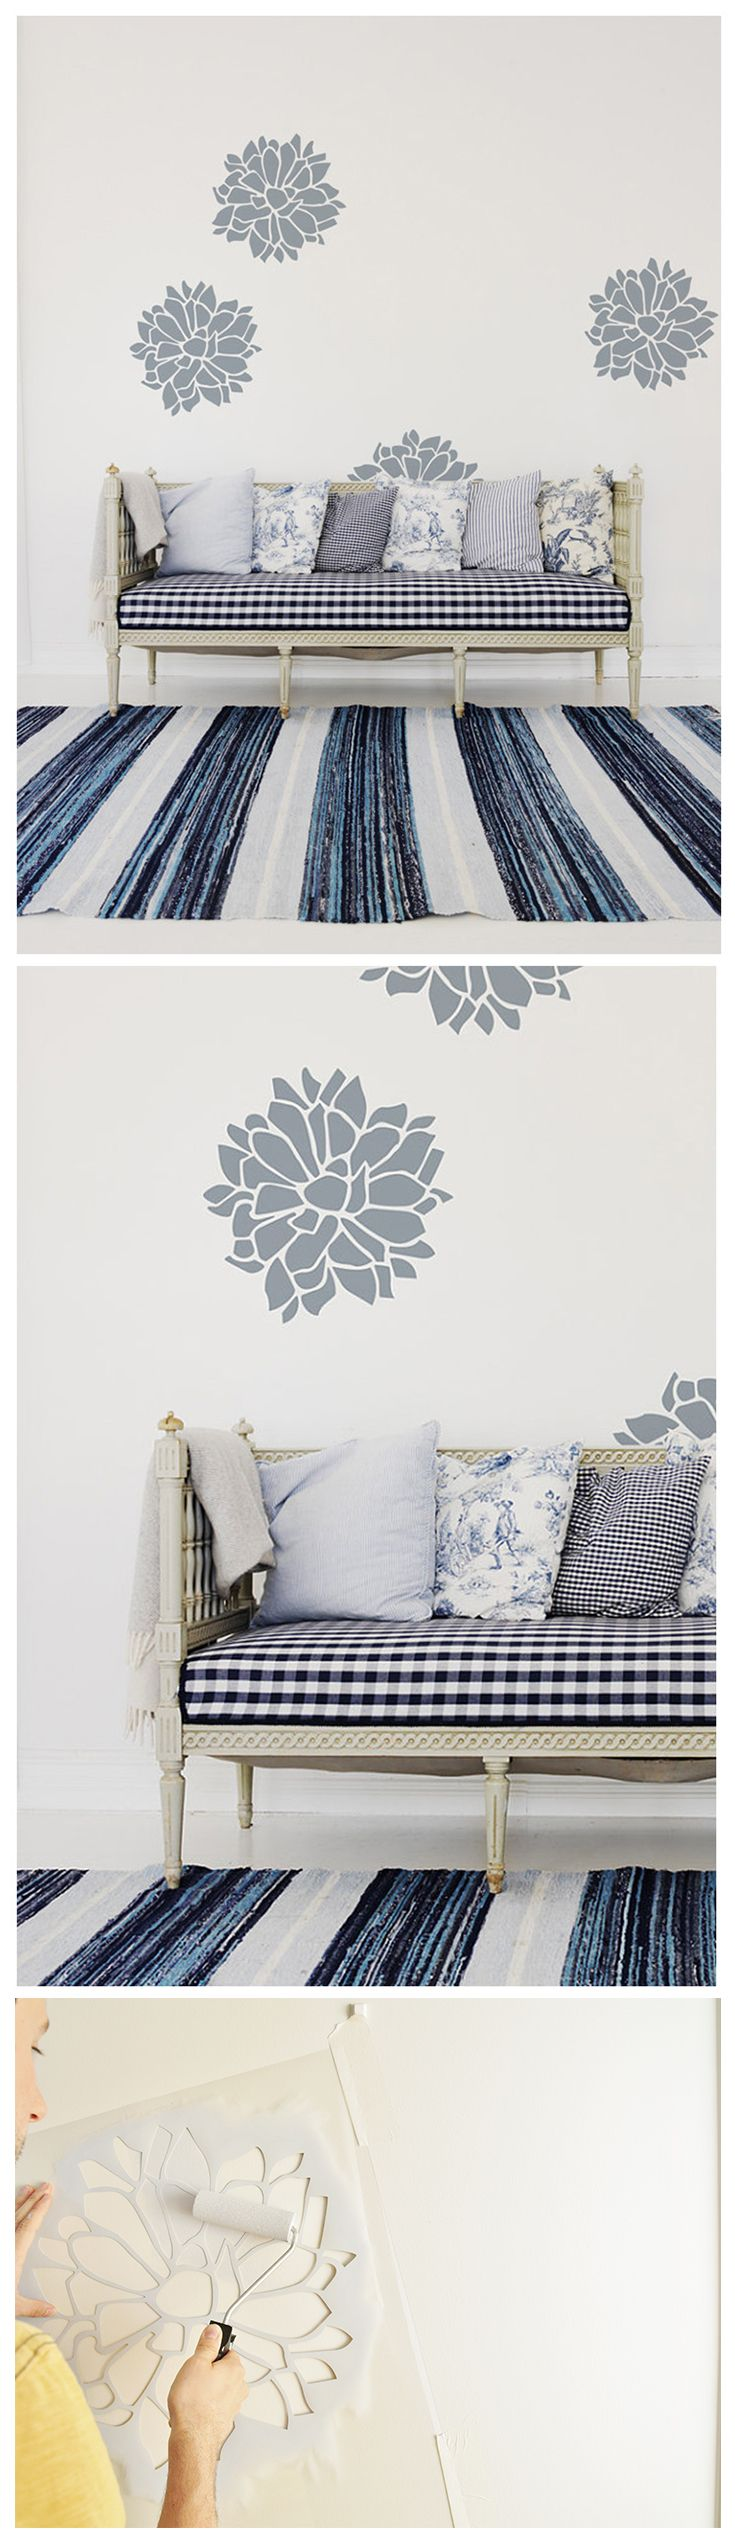 Floral stencil chrysanthemum wall stencil for wall decor floral stencil chrysanthemum wall stencil for wall decor amipublicfo Image collections